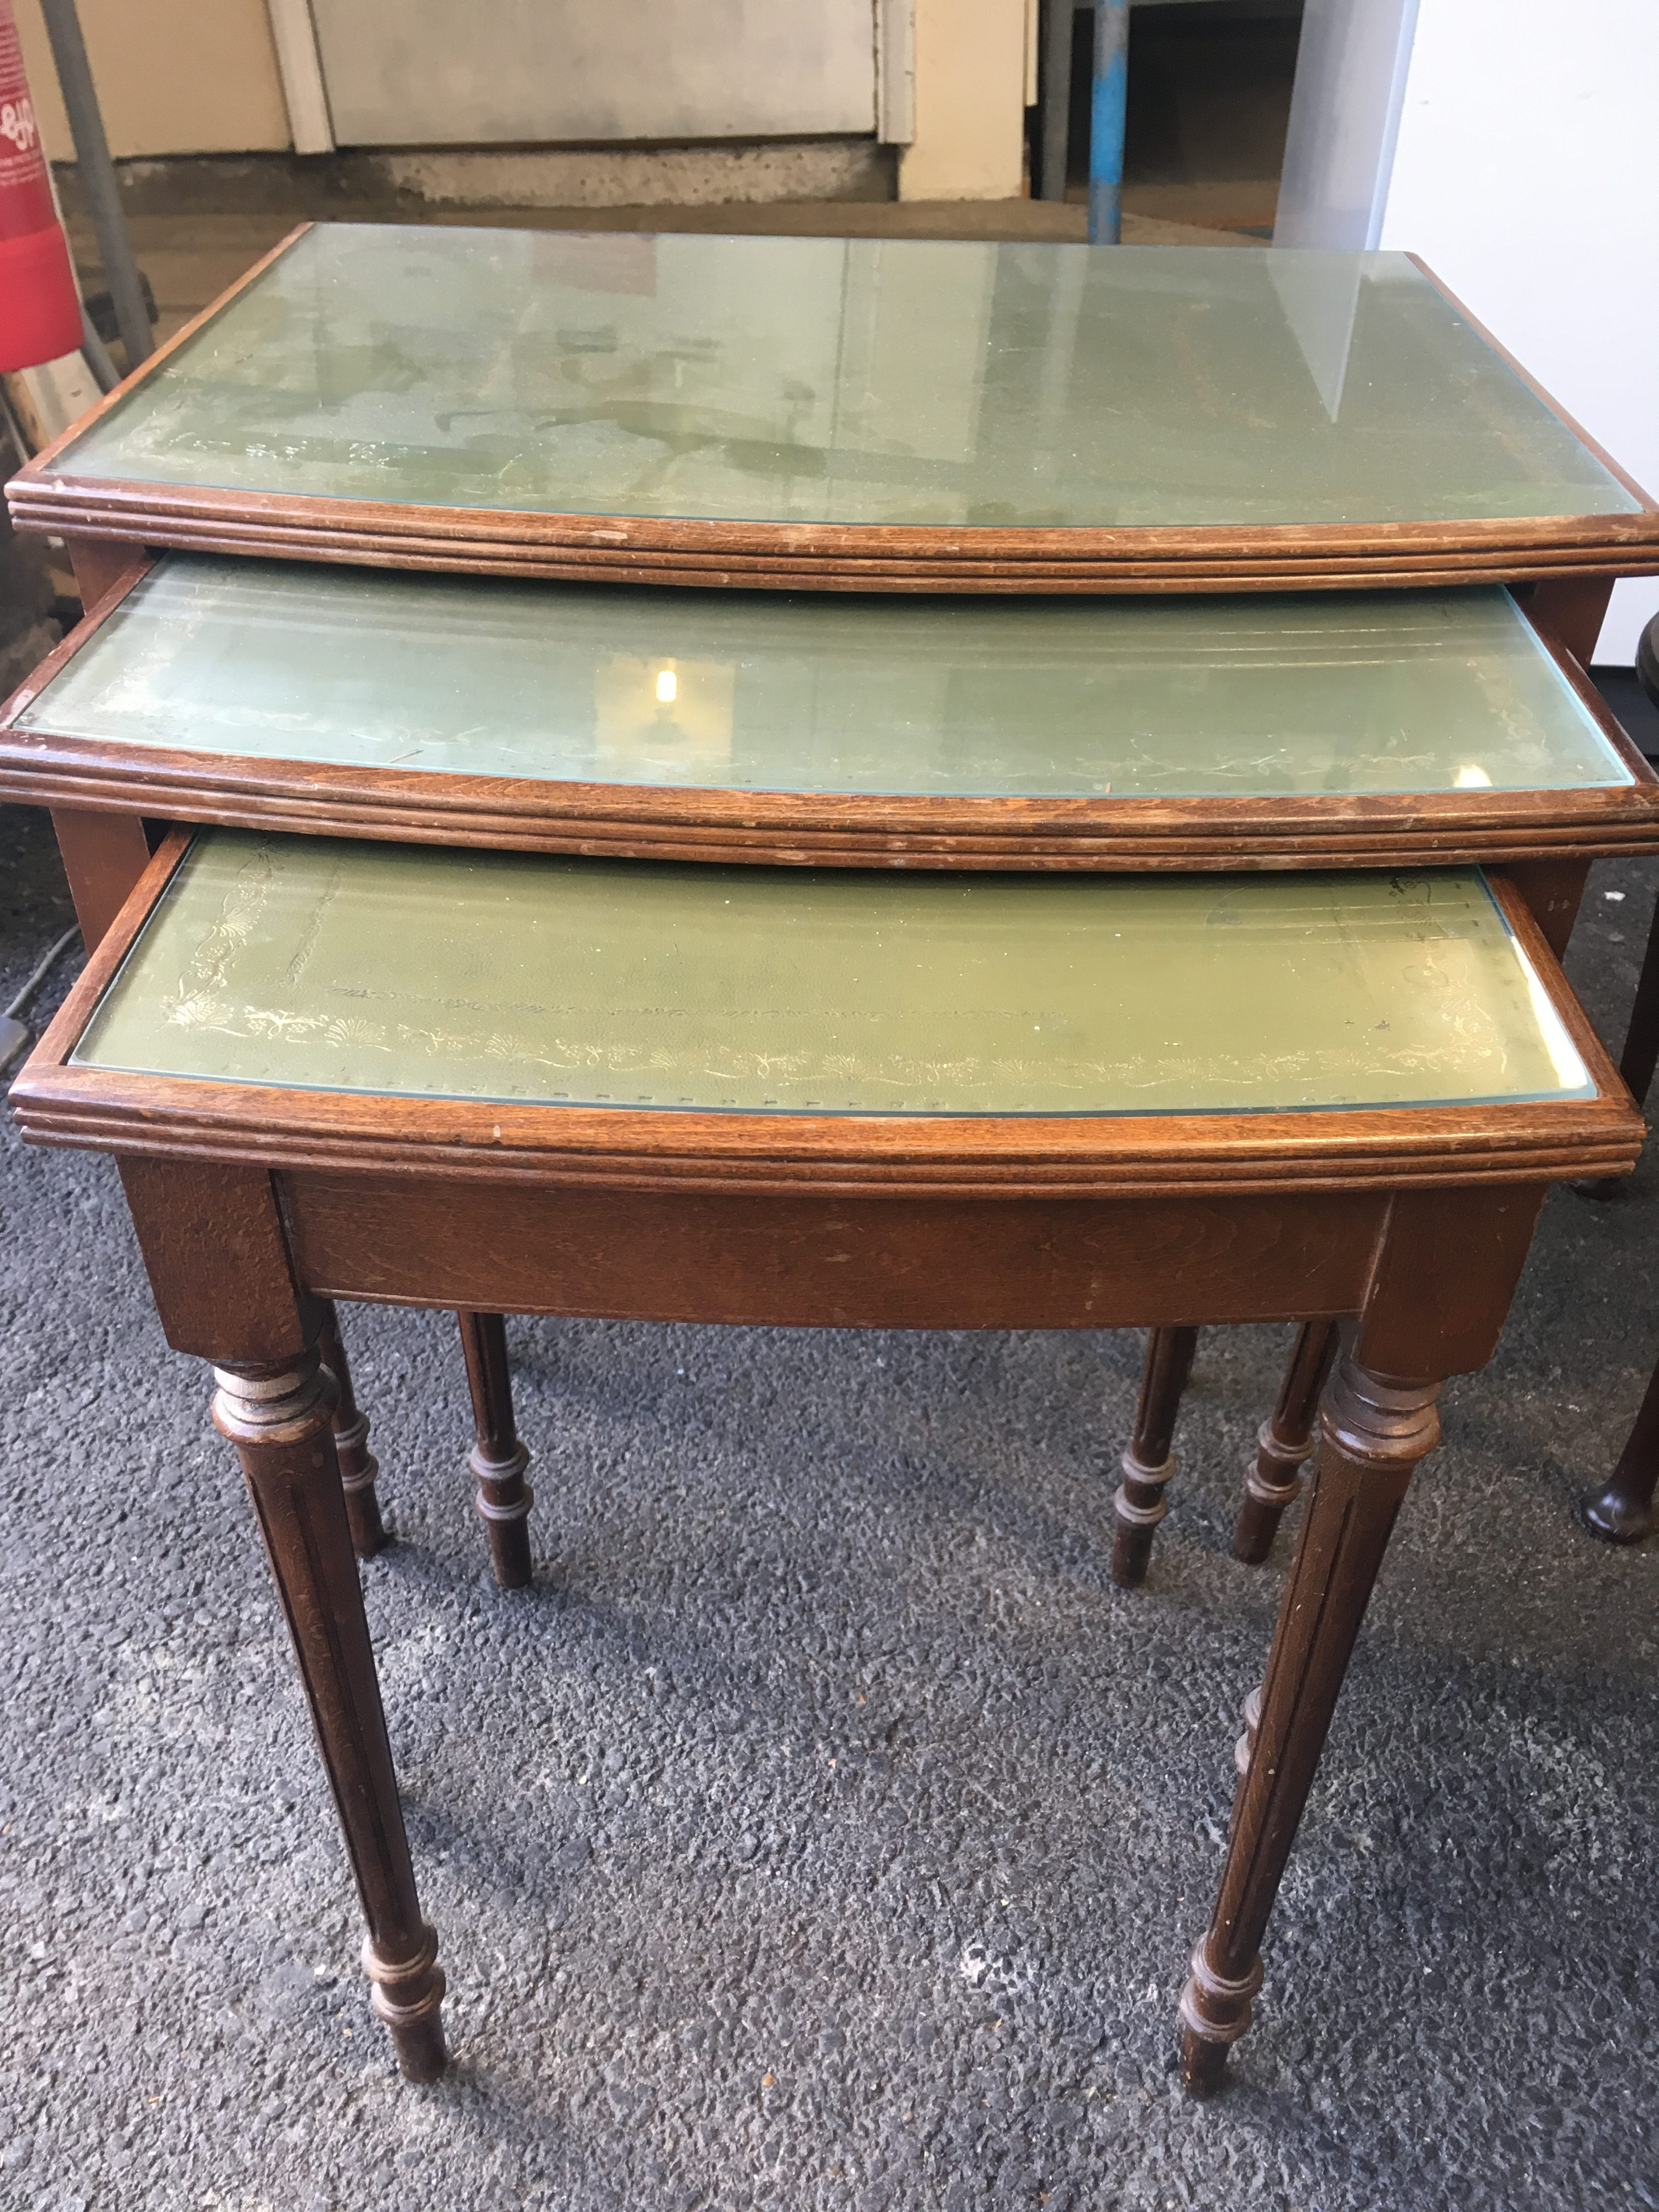 Upcycling: Joie Tables Before